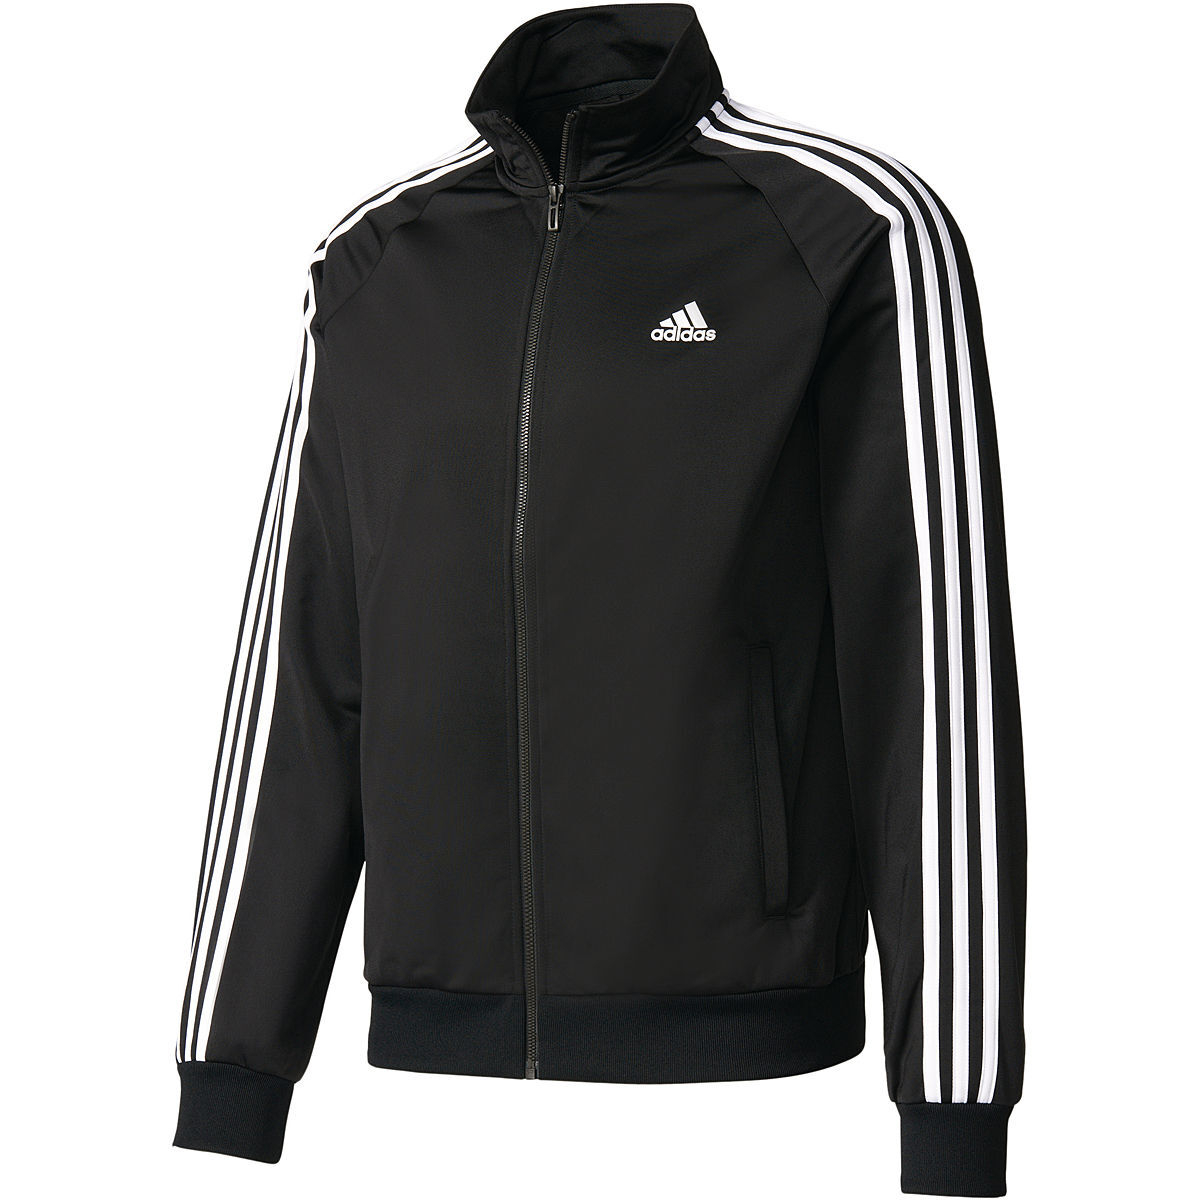 adidas herren trainingsjacke essentials schwarz wei xxl. Black Bedroom Furniture Sets. Home Design Ideas